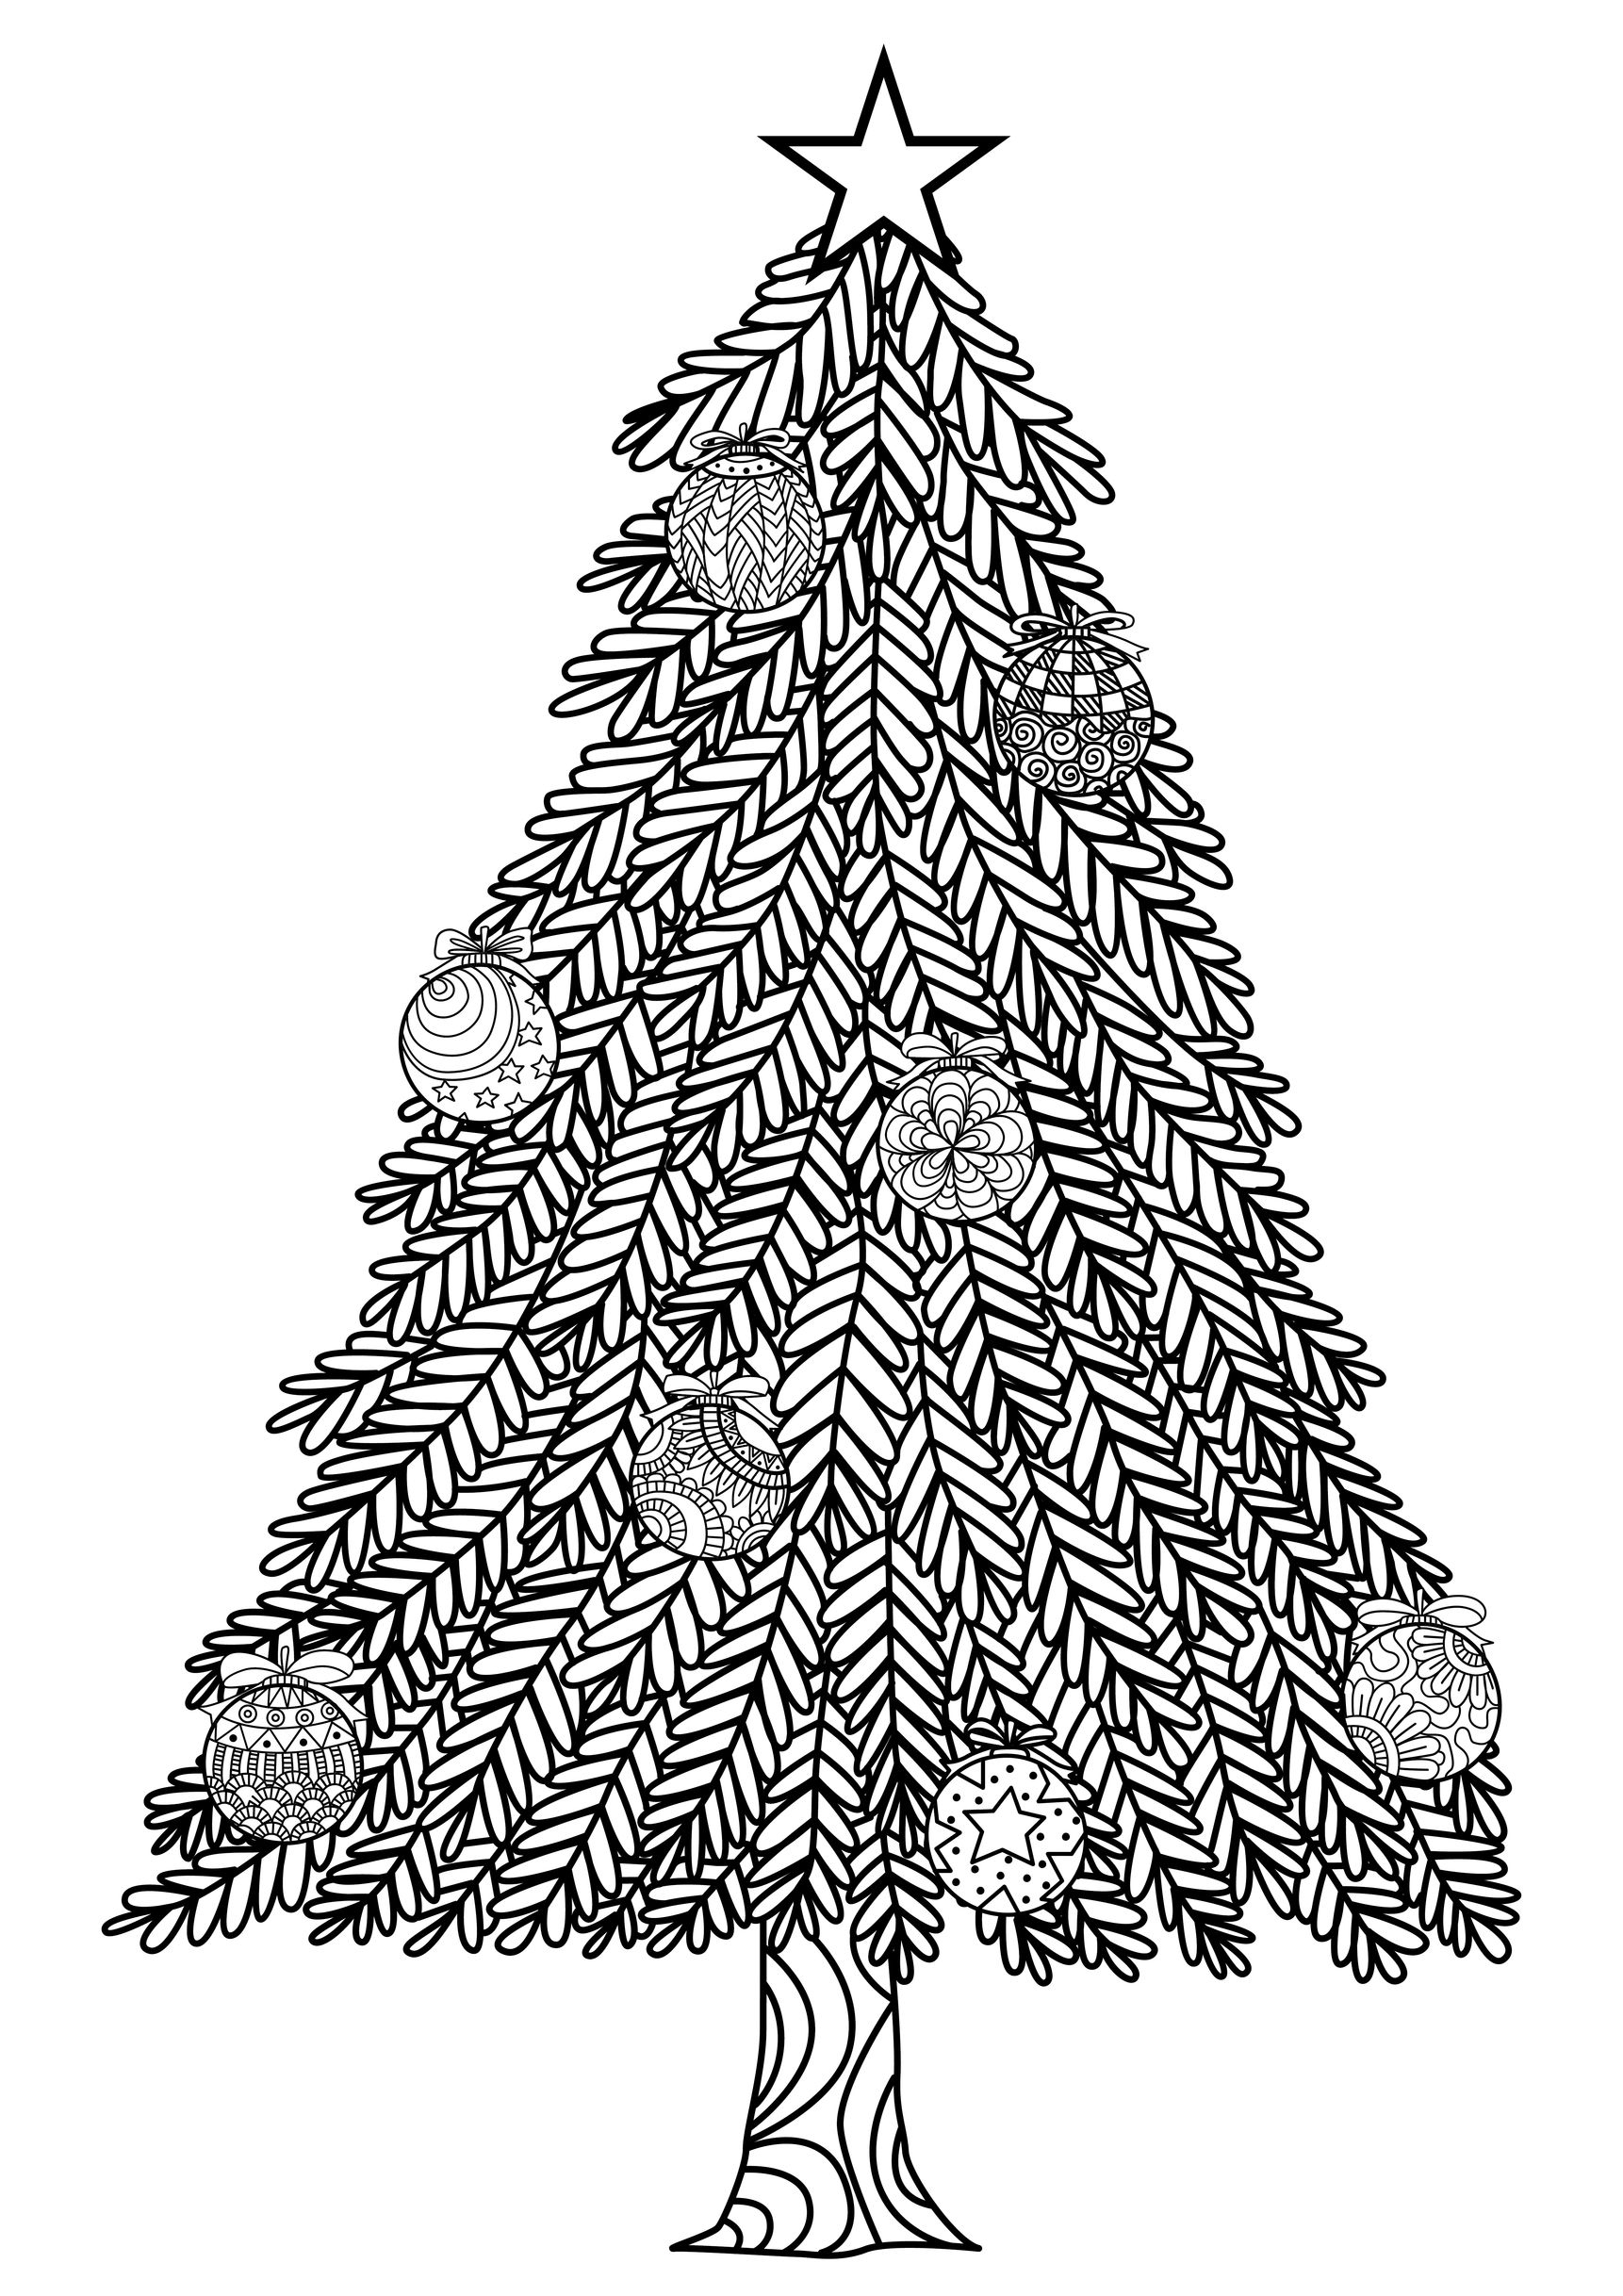 Christmas Tree With Ball Ornaments - Christmas Adult Coloring Pages - Free Printable Christmas Tree Images